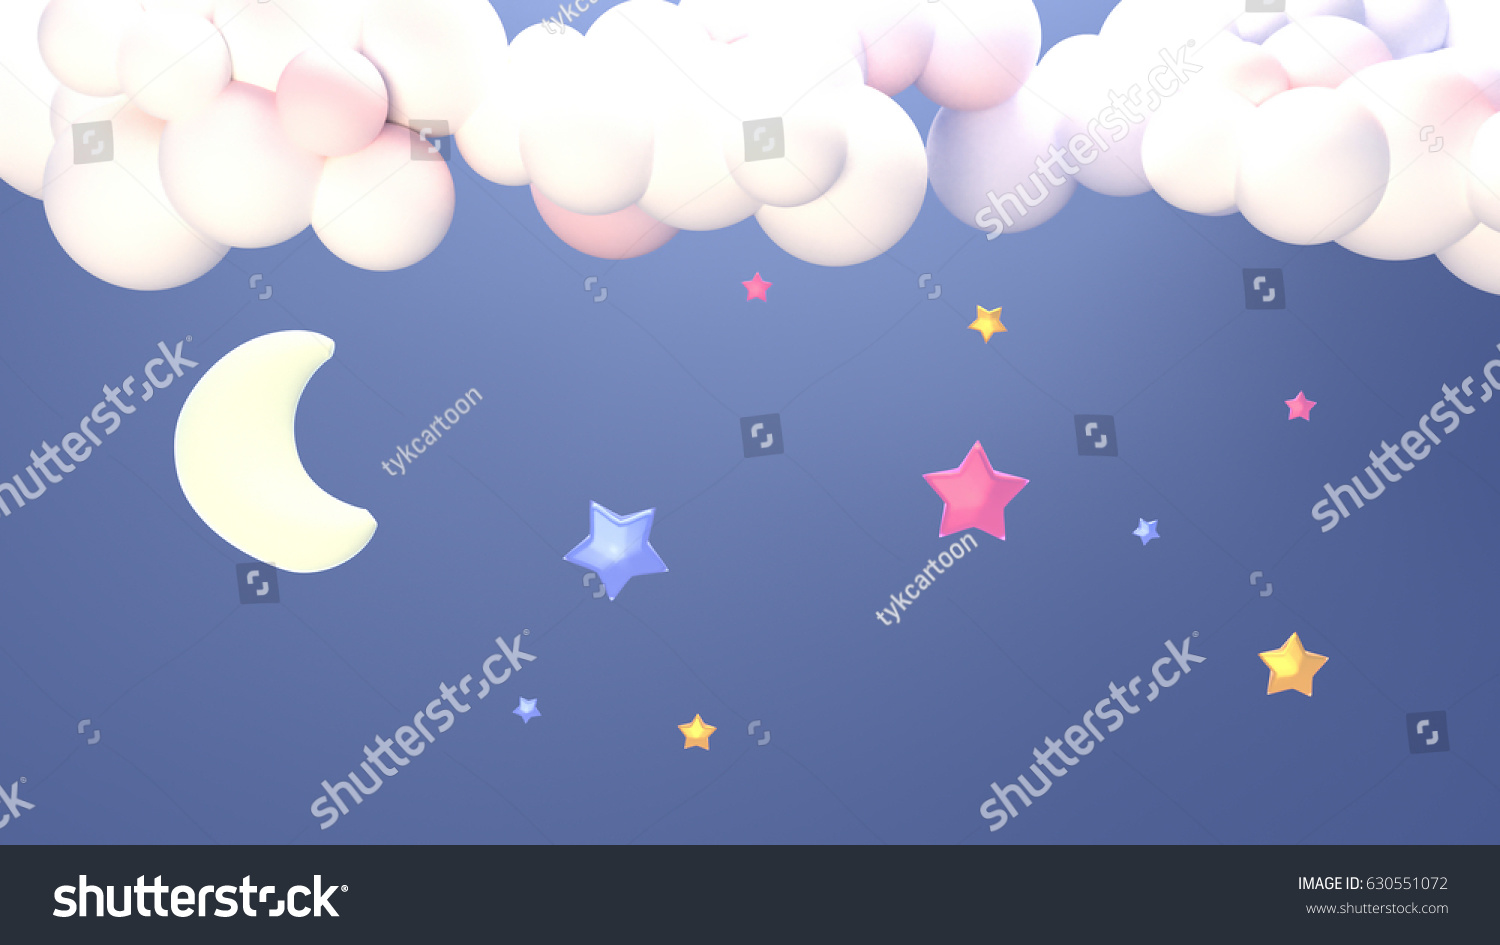 Stars Room Decor Cartoon Night Sky Clouds Moon Stars Stock Illustration Royalty